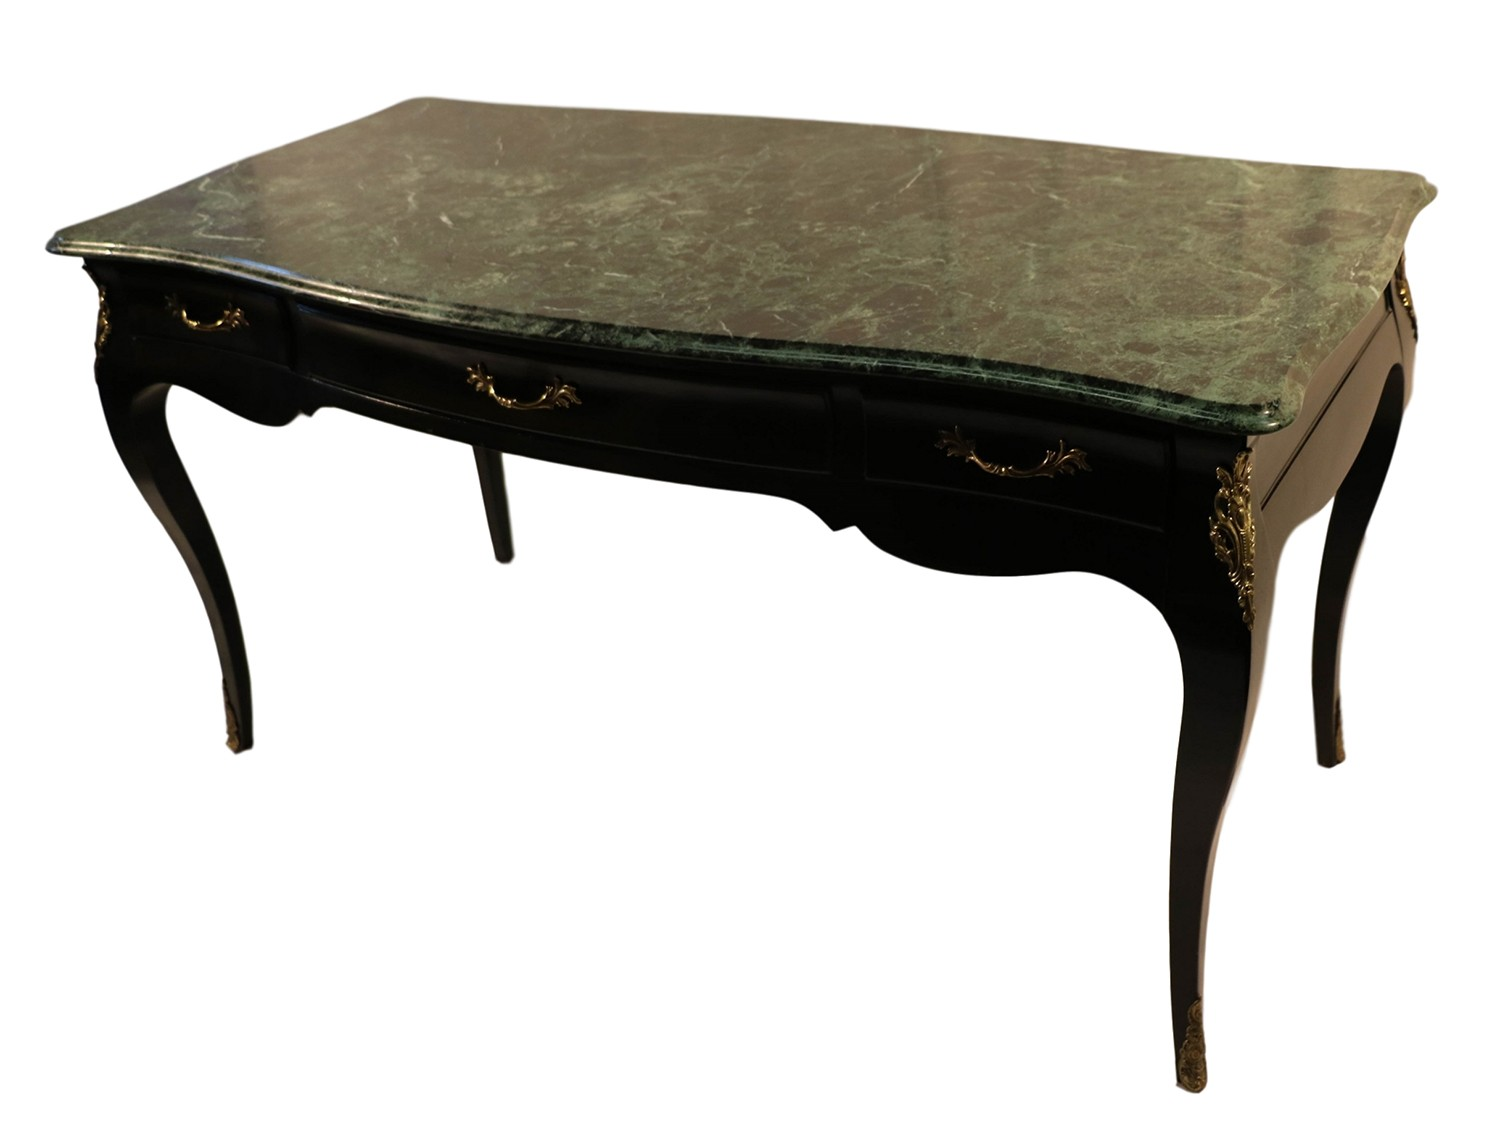 Sofa With French Writing Louis Xv Style Bureau Plat Marble French Writing Desk